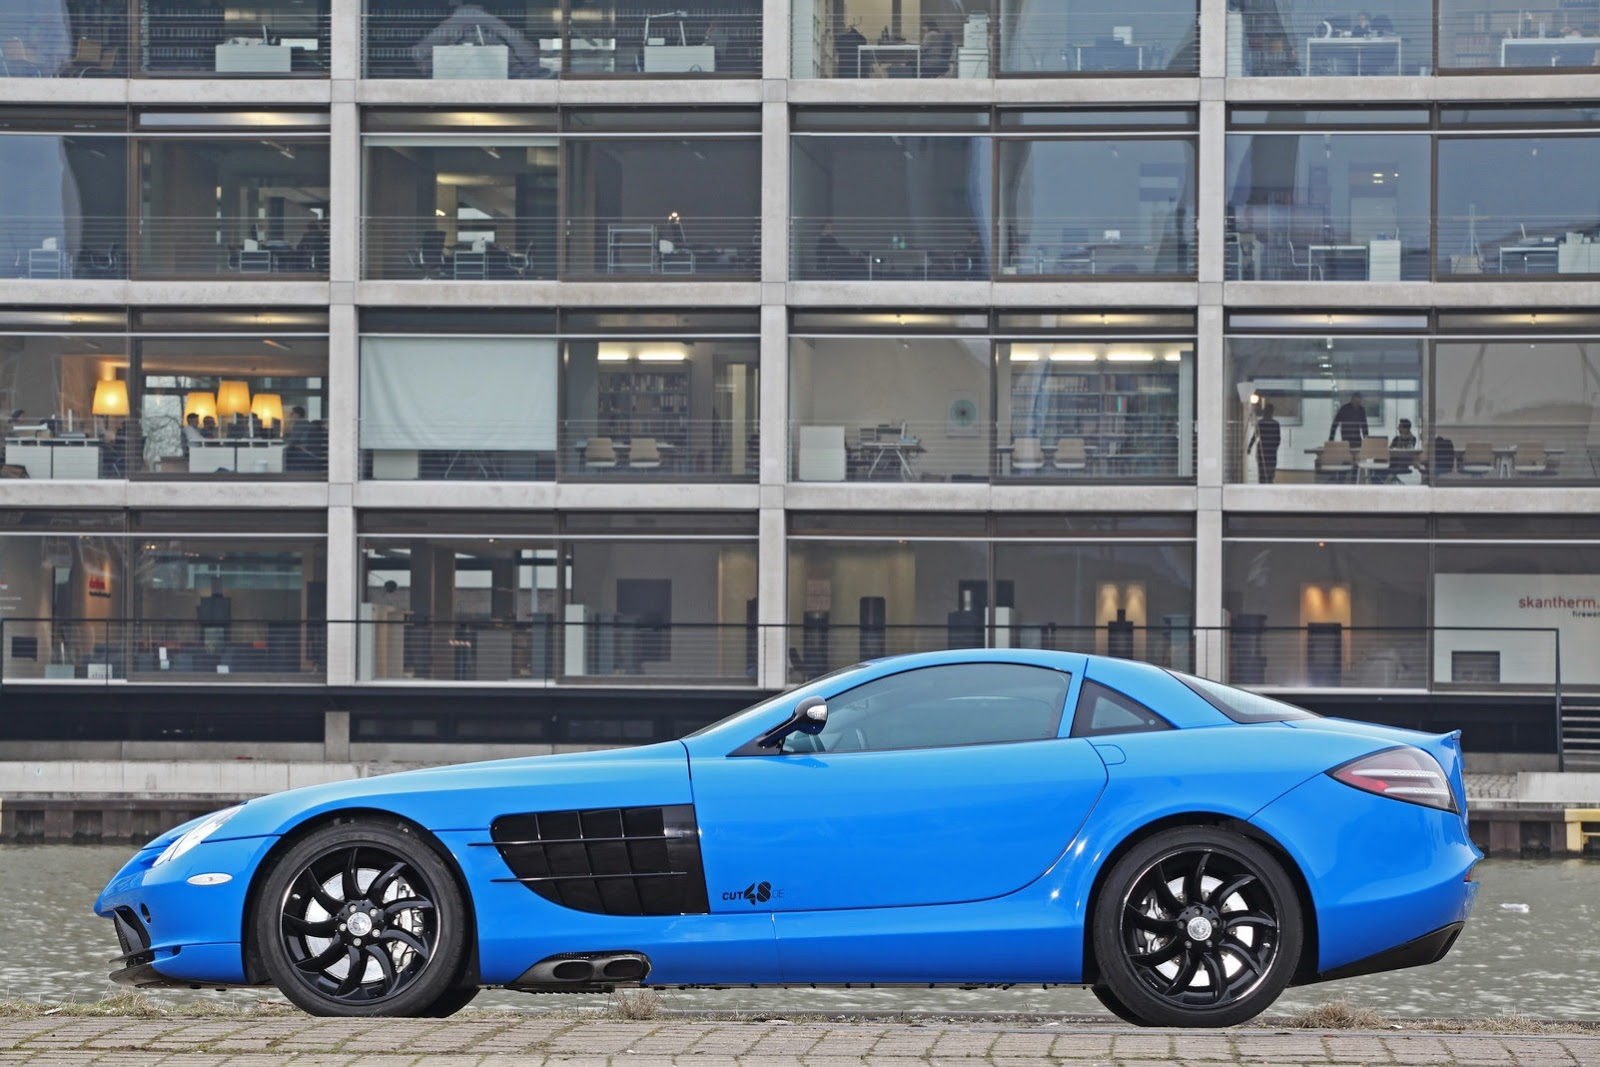 As a result the car can go from zero to 200 km h 124mph in less than 10 seconds and has a top speed of 345 km h 215mph electronically limited